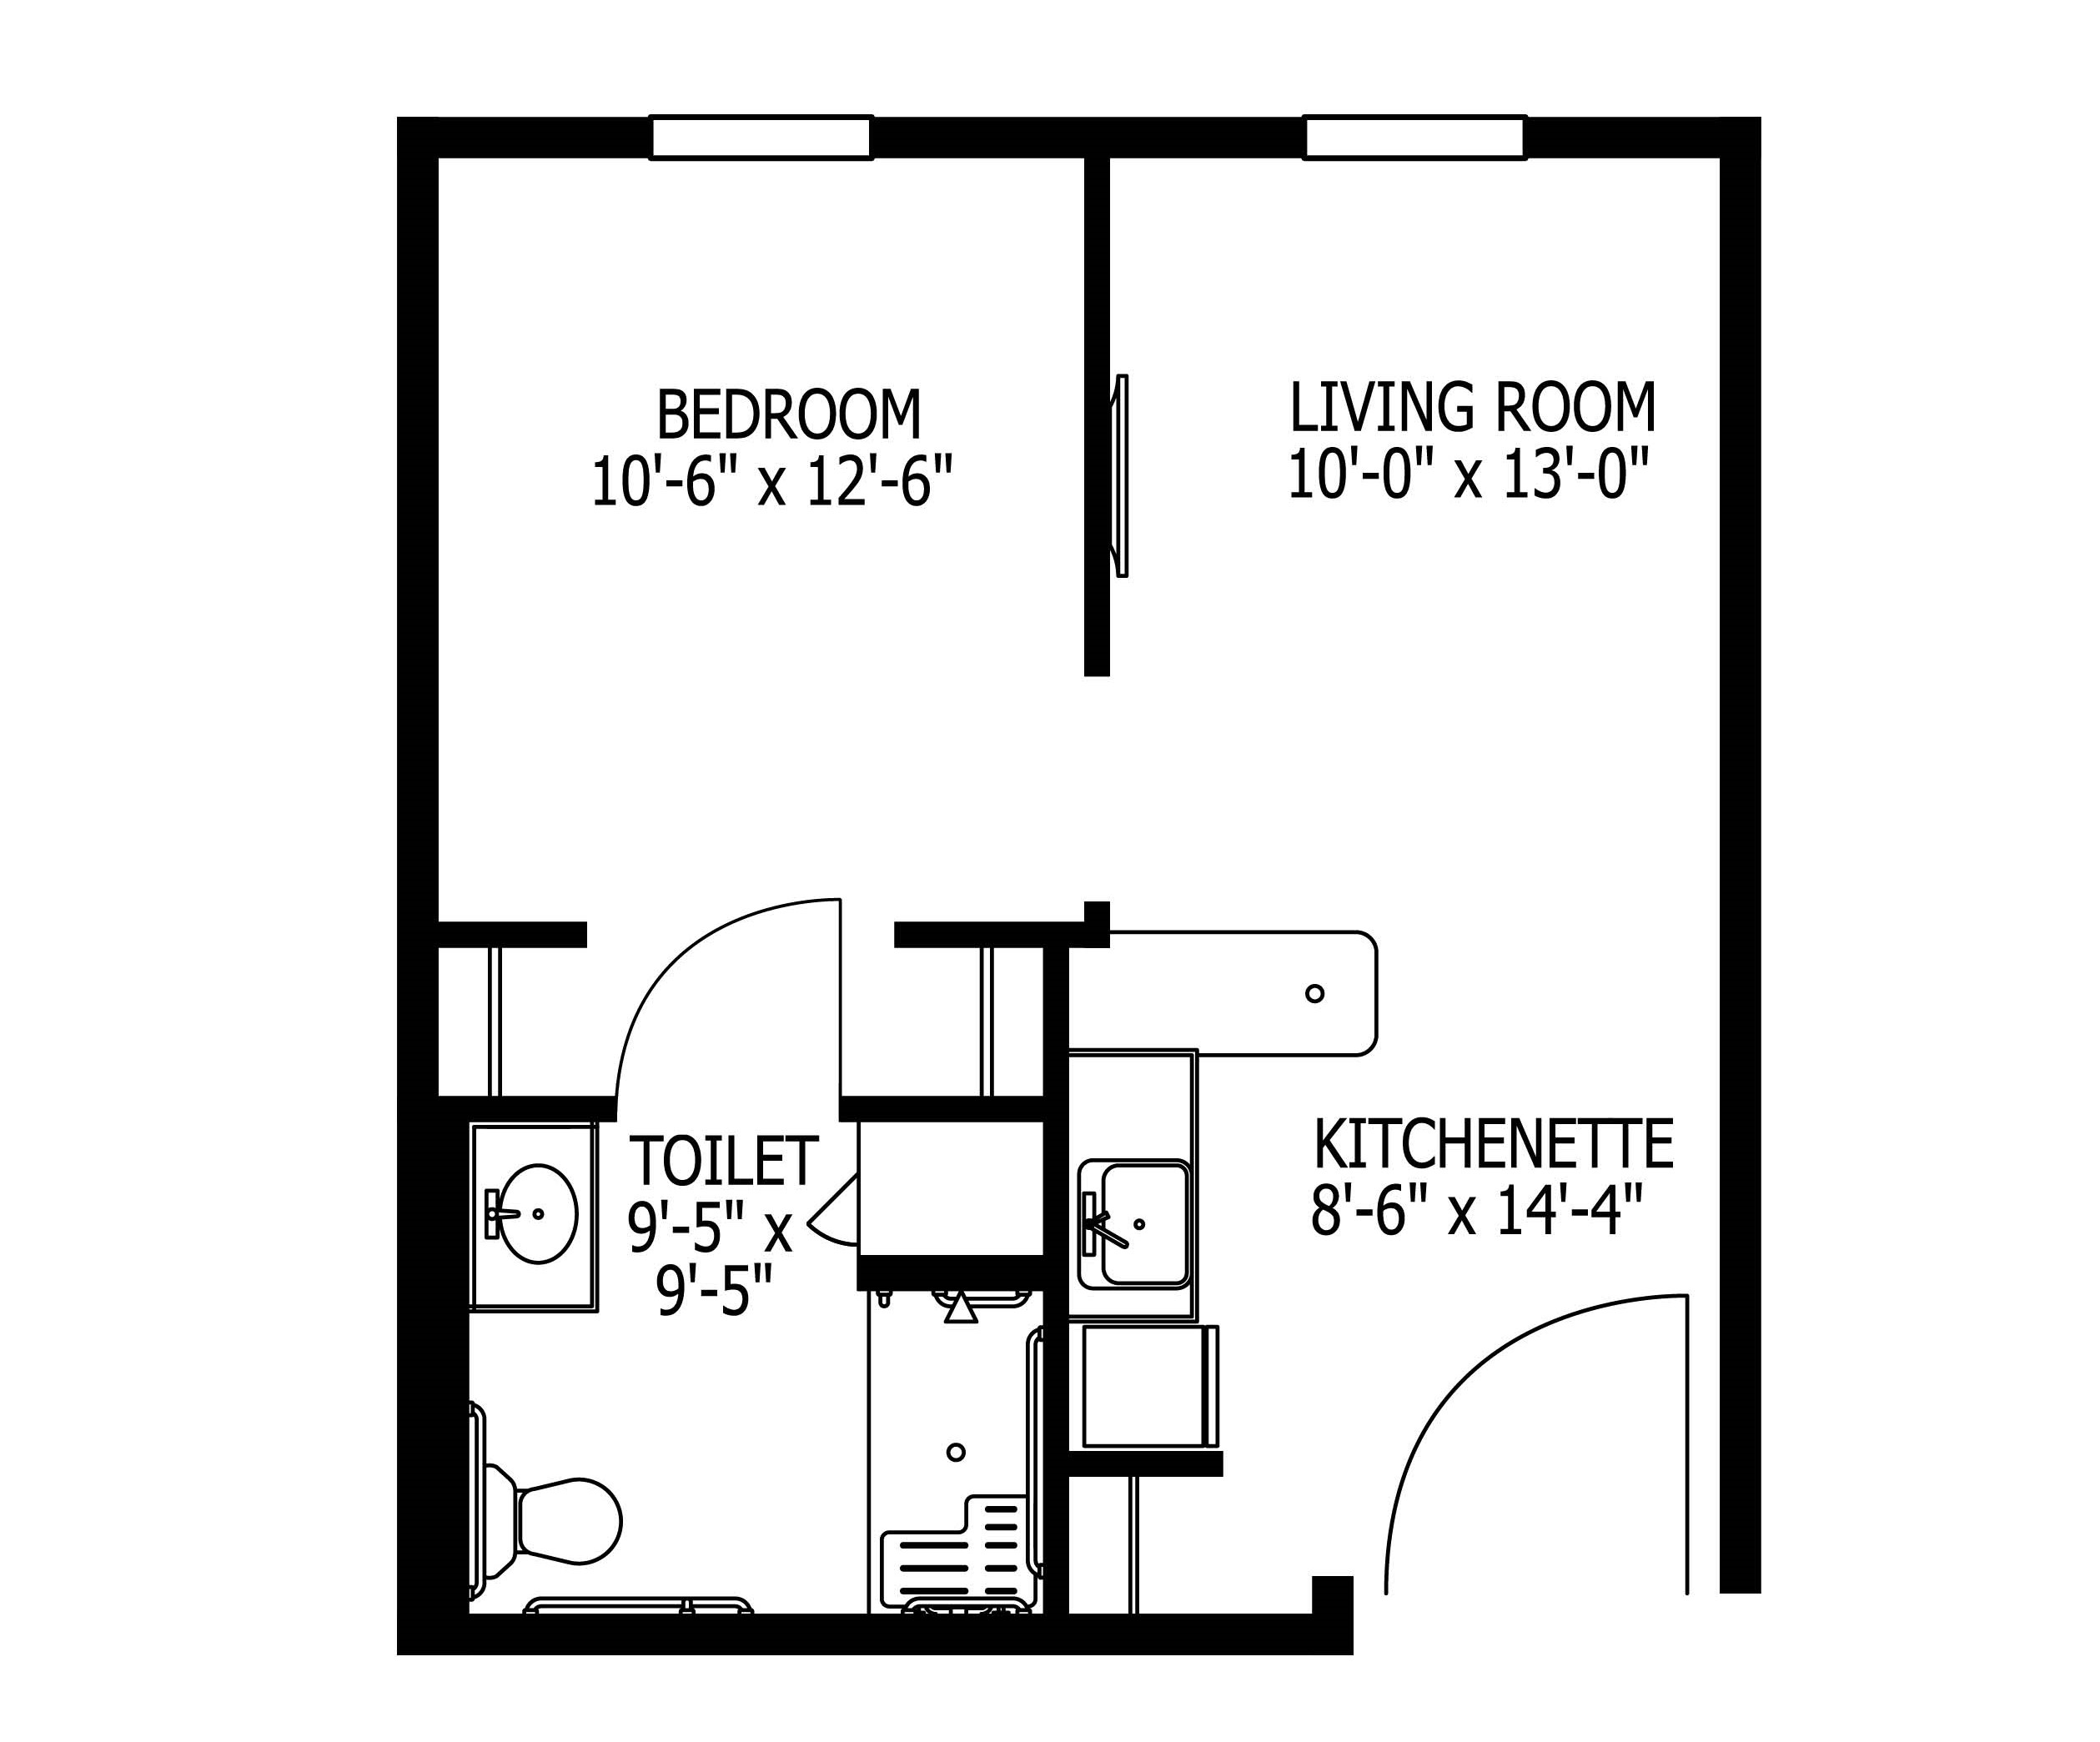 Memory care - 1 BR + kitchenette, 485 sq ft